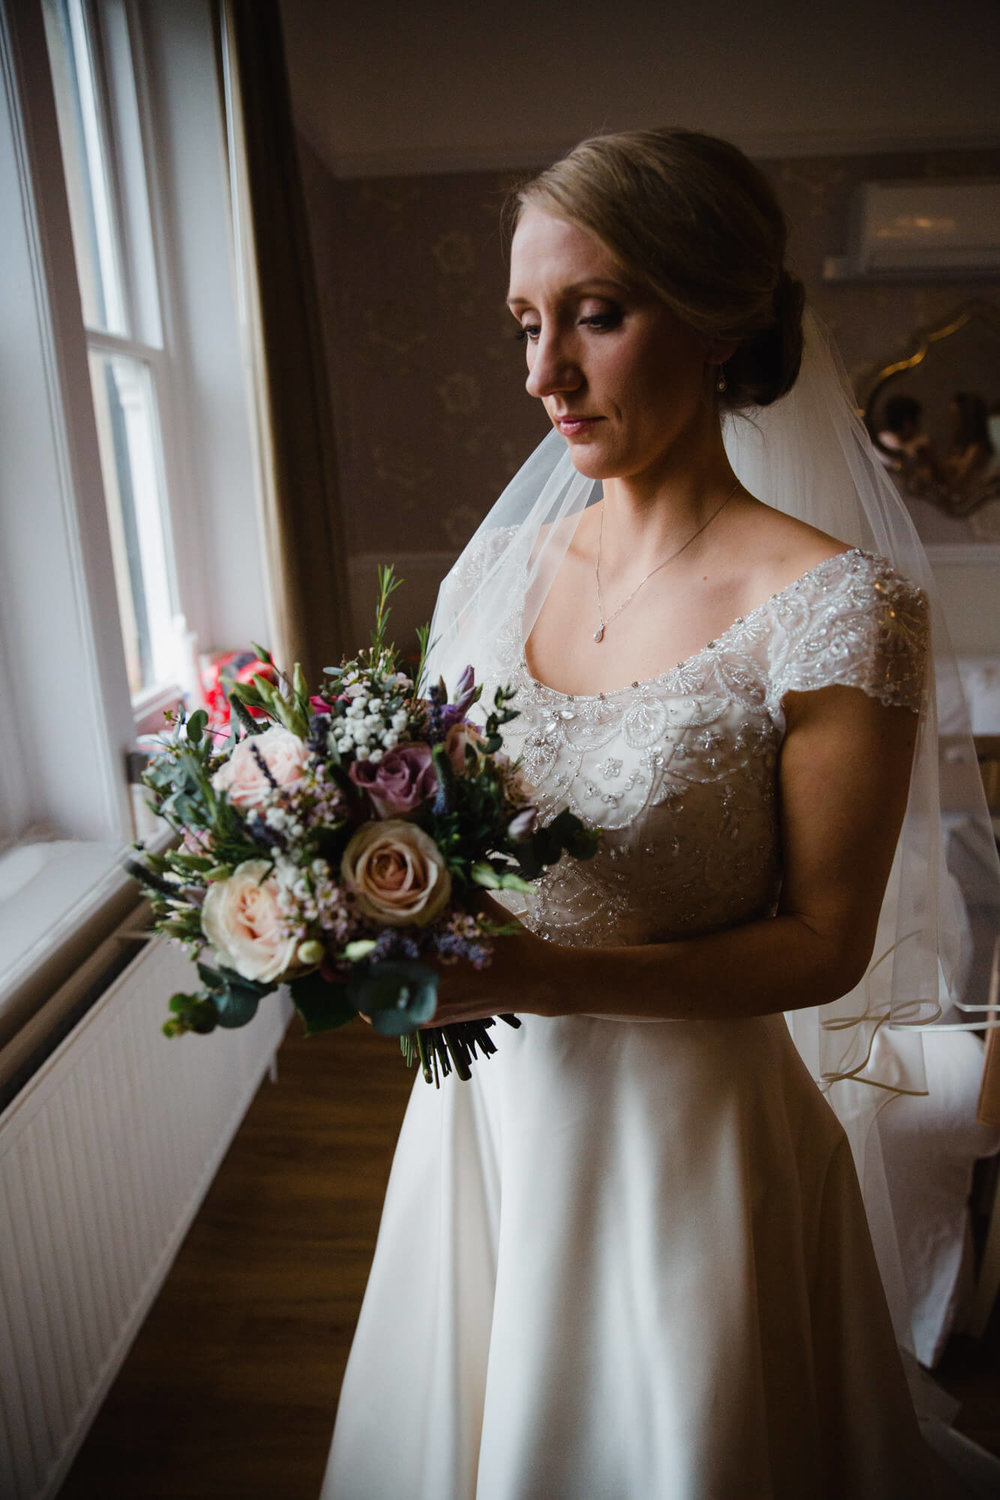 Portrait of bride standing in window holding bouquet